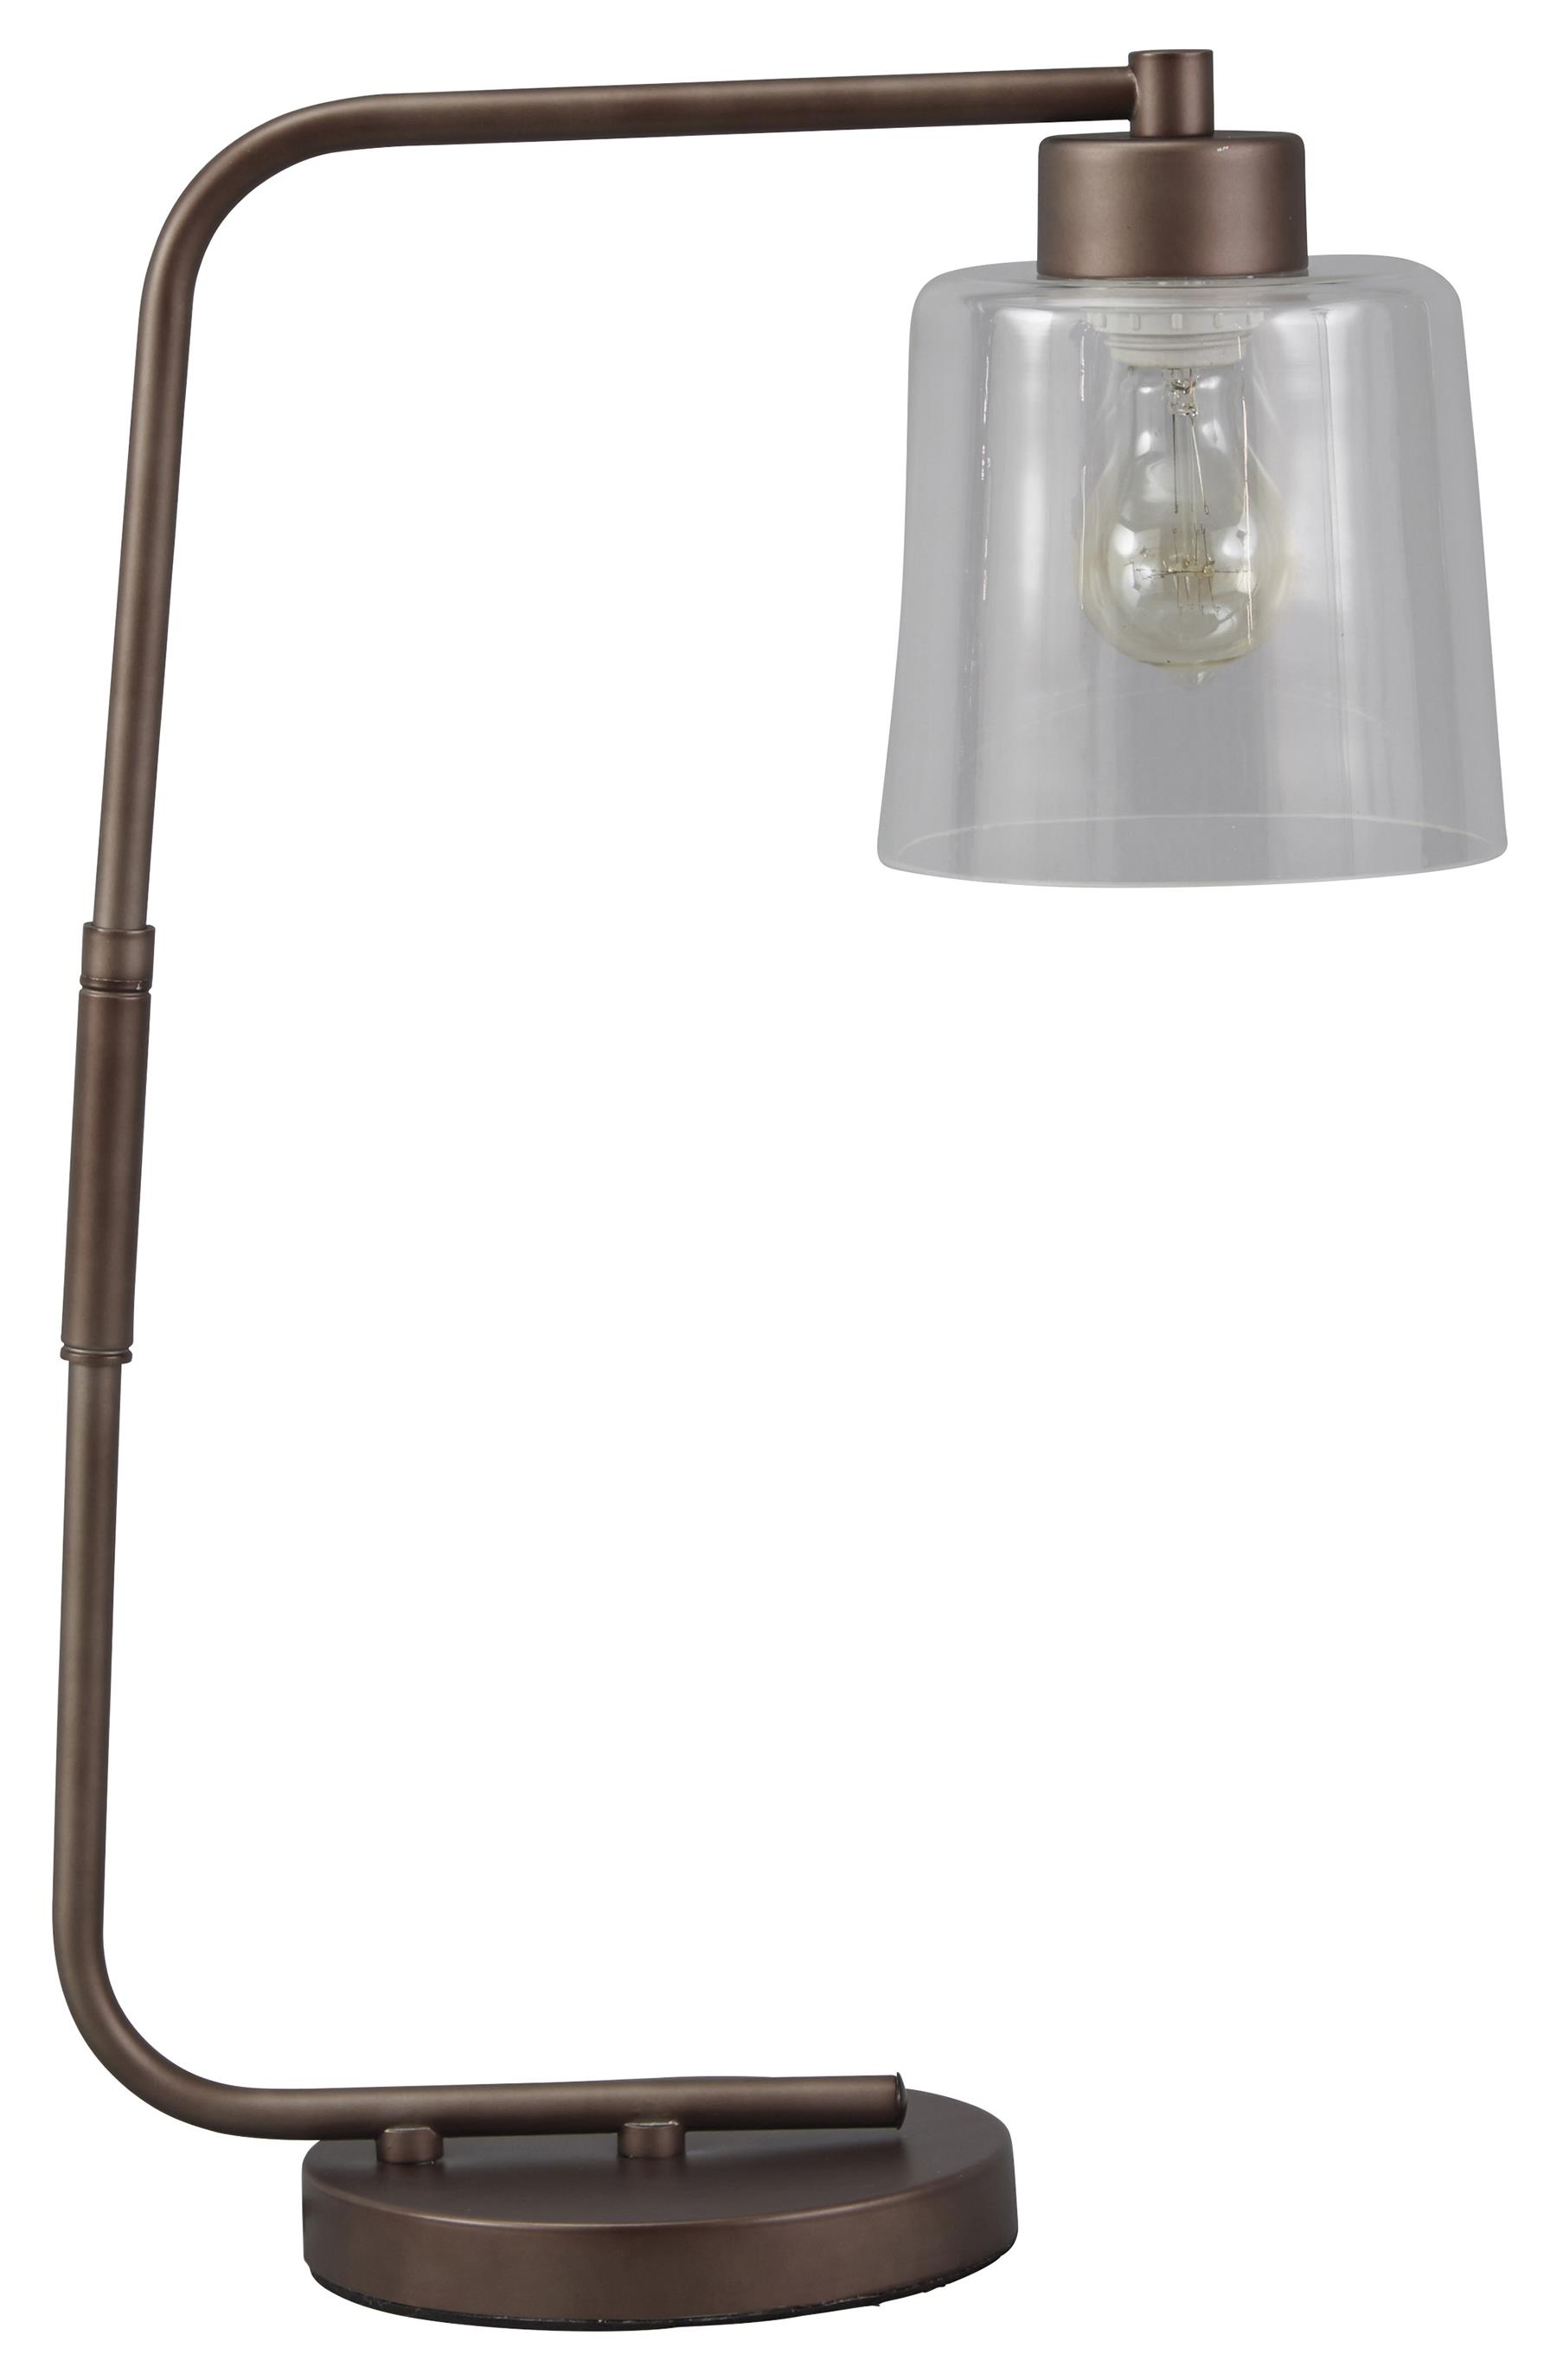 Signature Design by Ashley Lamps - Vintage Style Kyron Metal Desk Lamp - Item Number: L734162